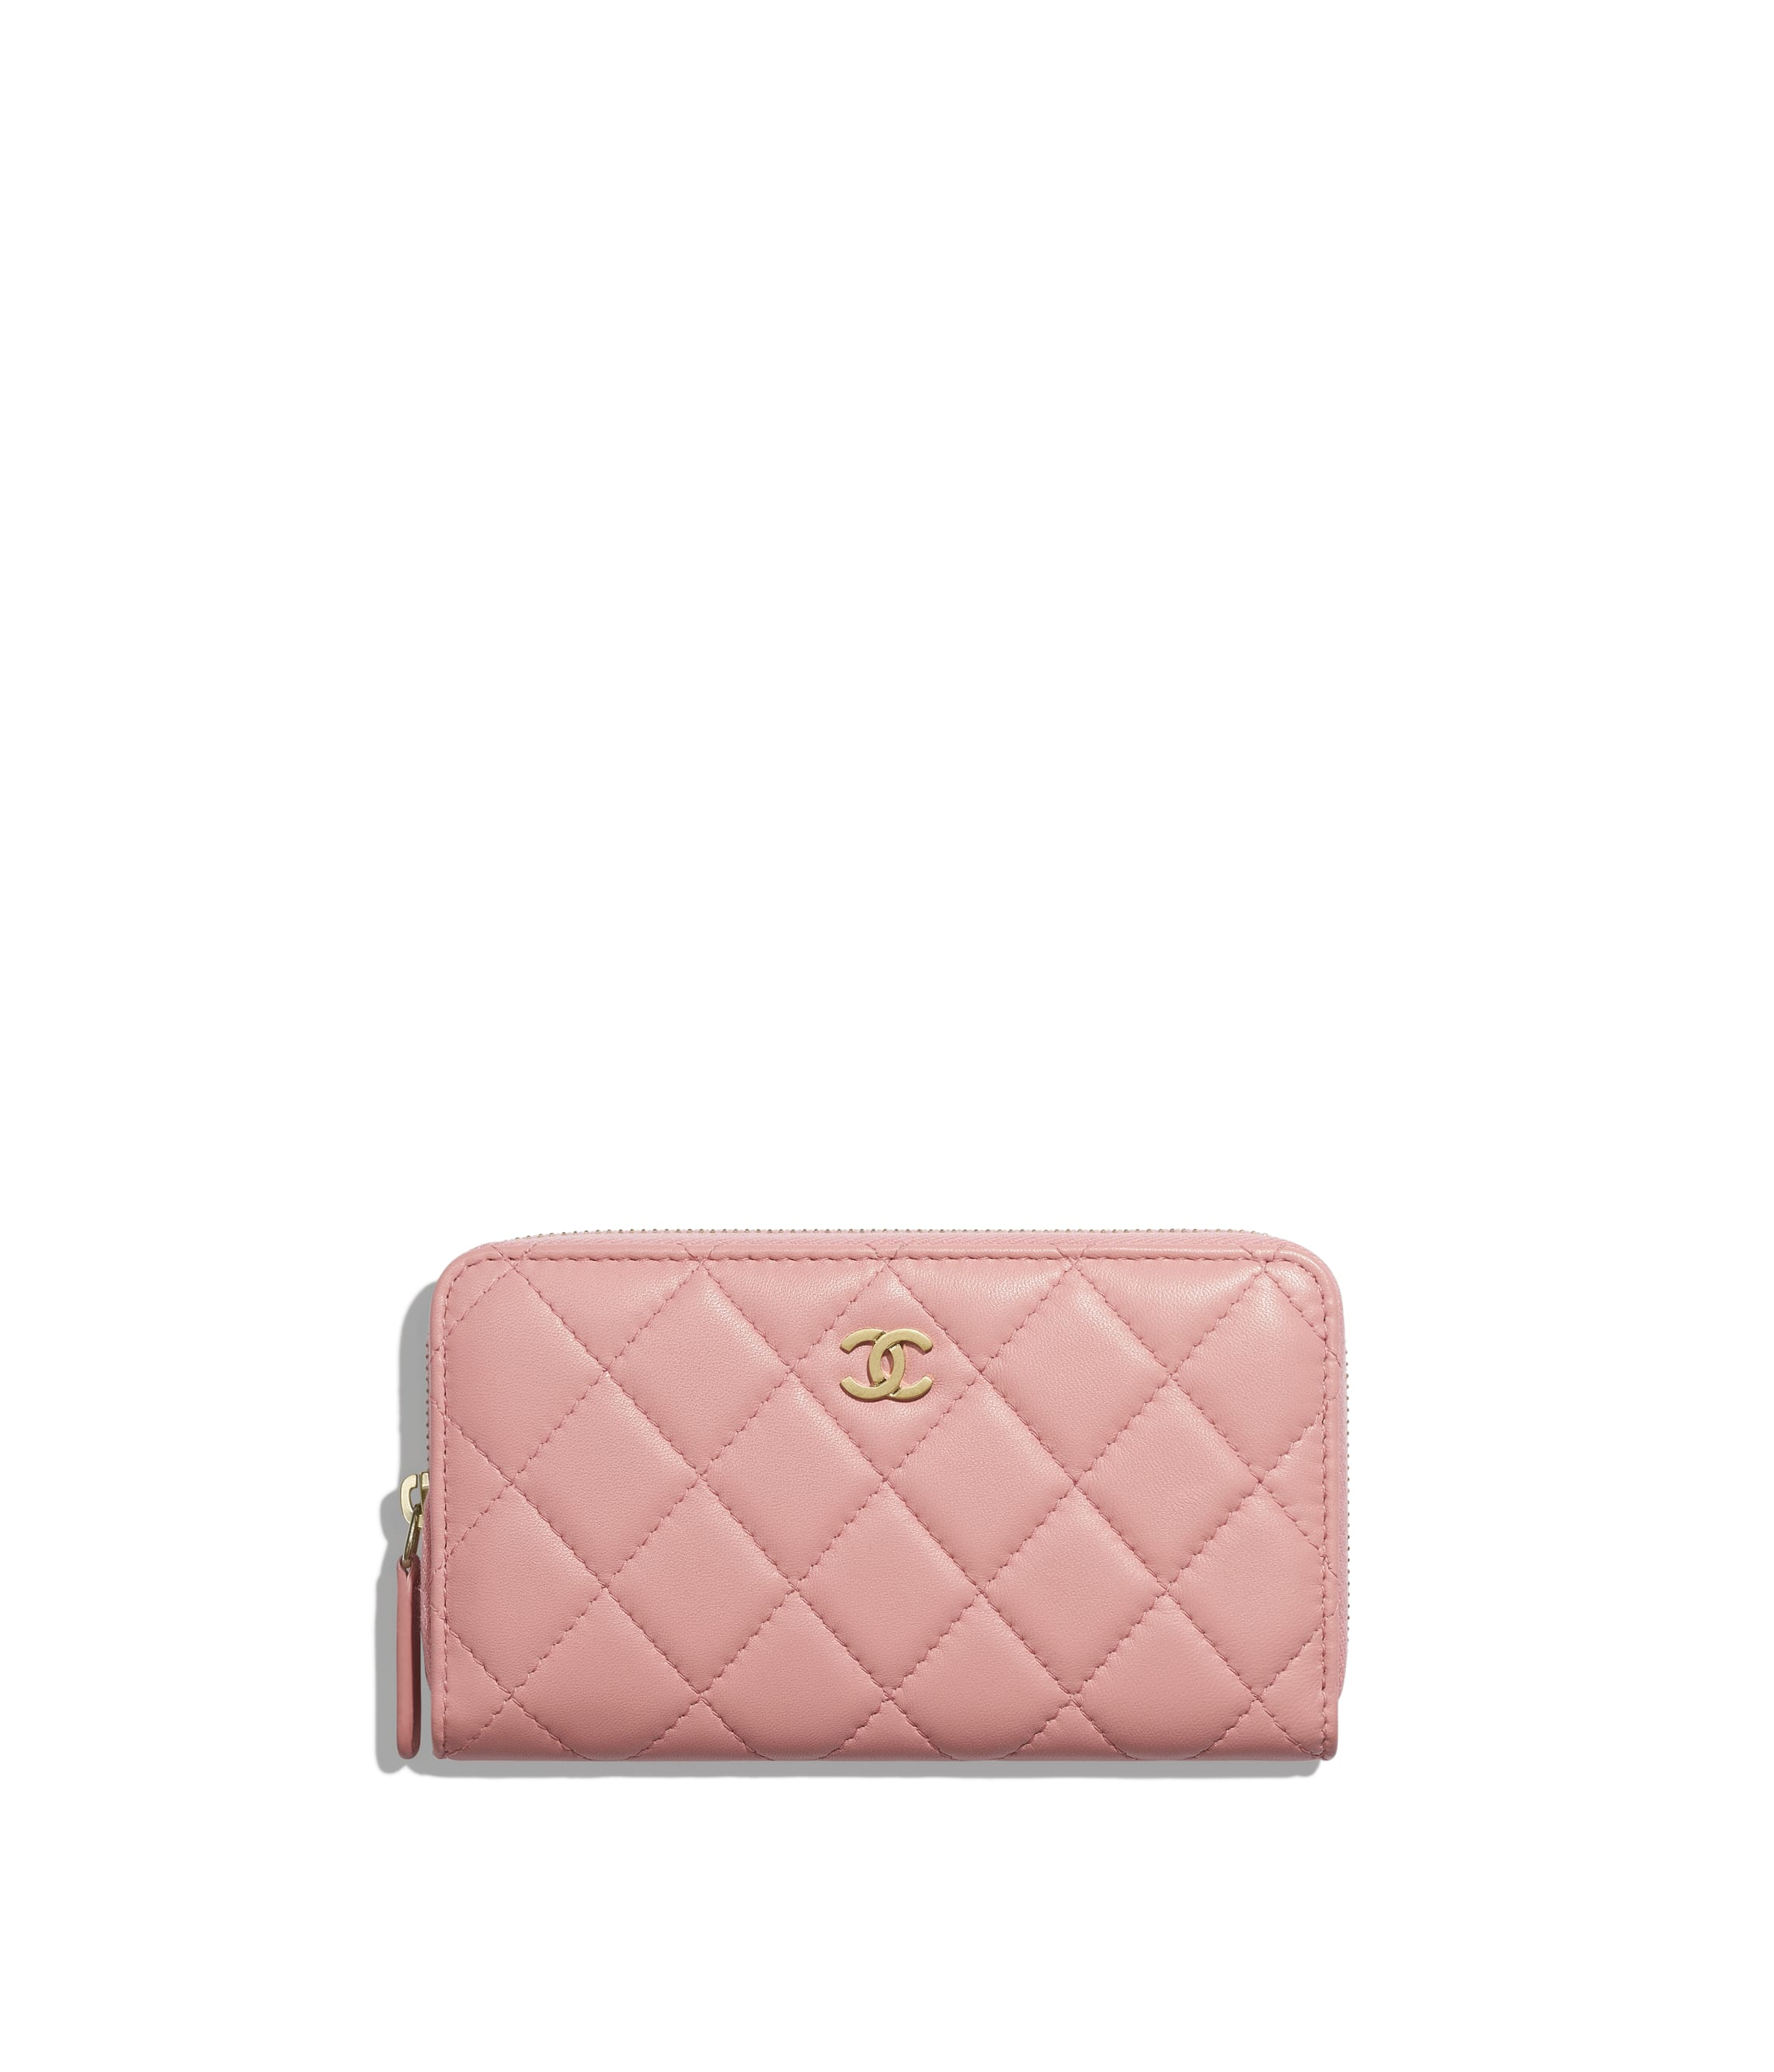 cbc0774222afe5 Long Wallets - Small Leather Goods - CHANEL